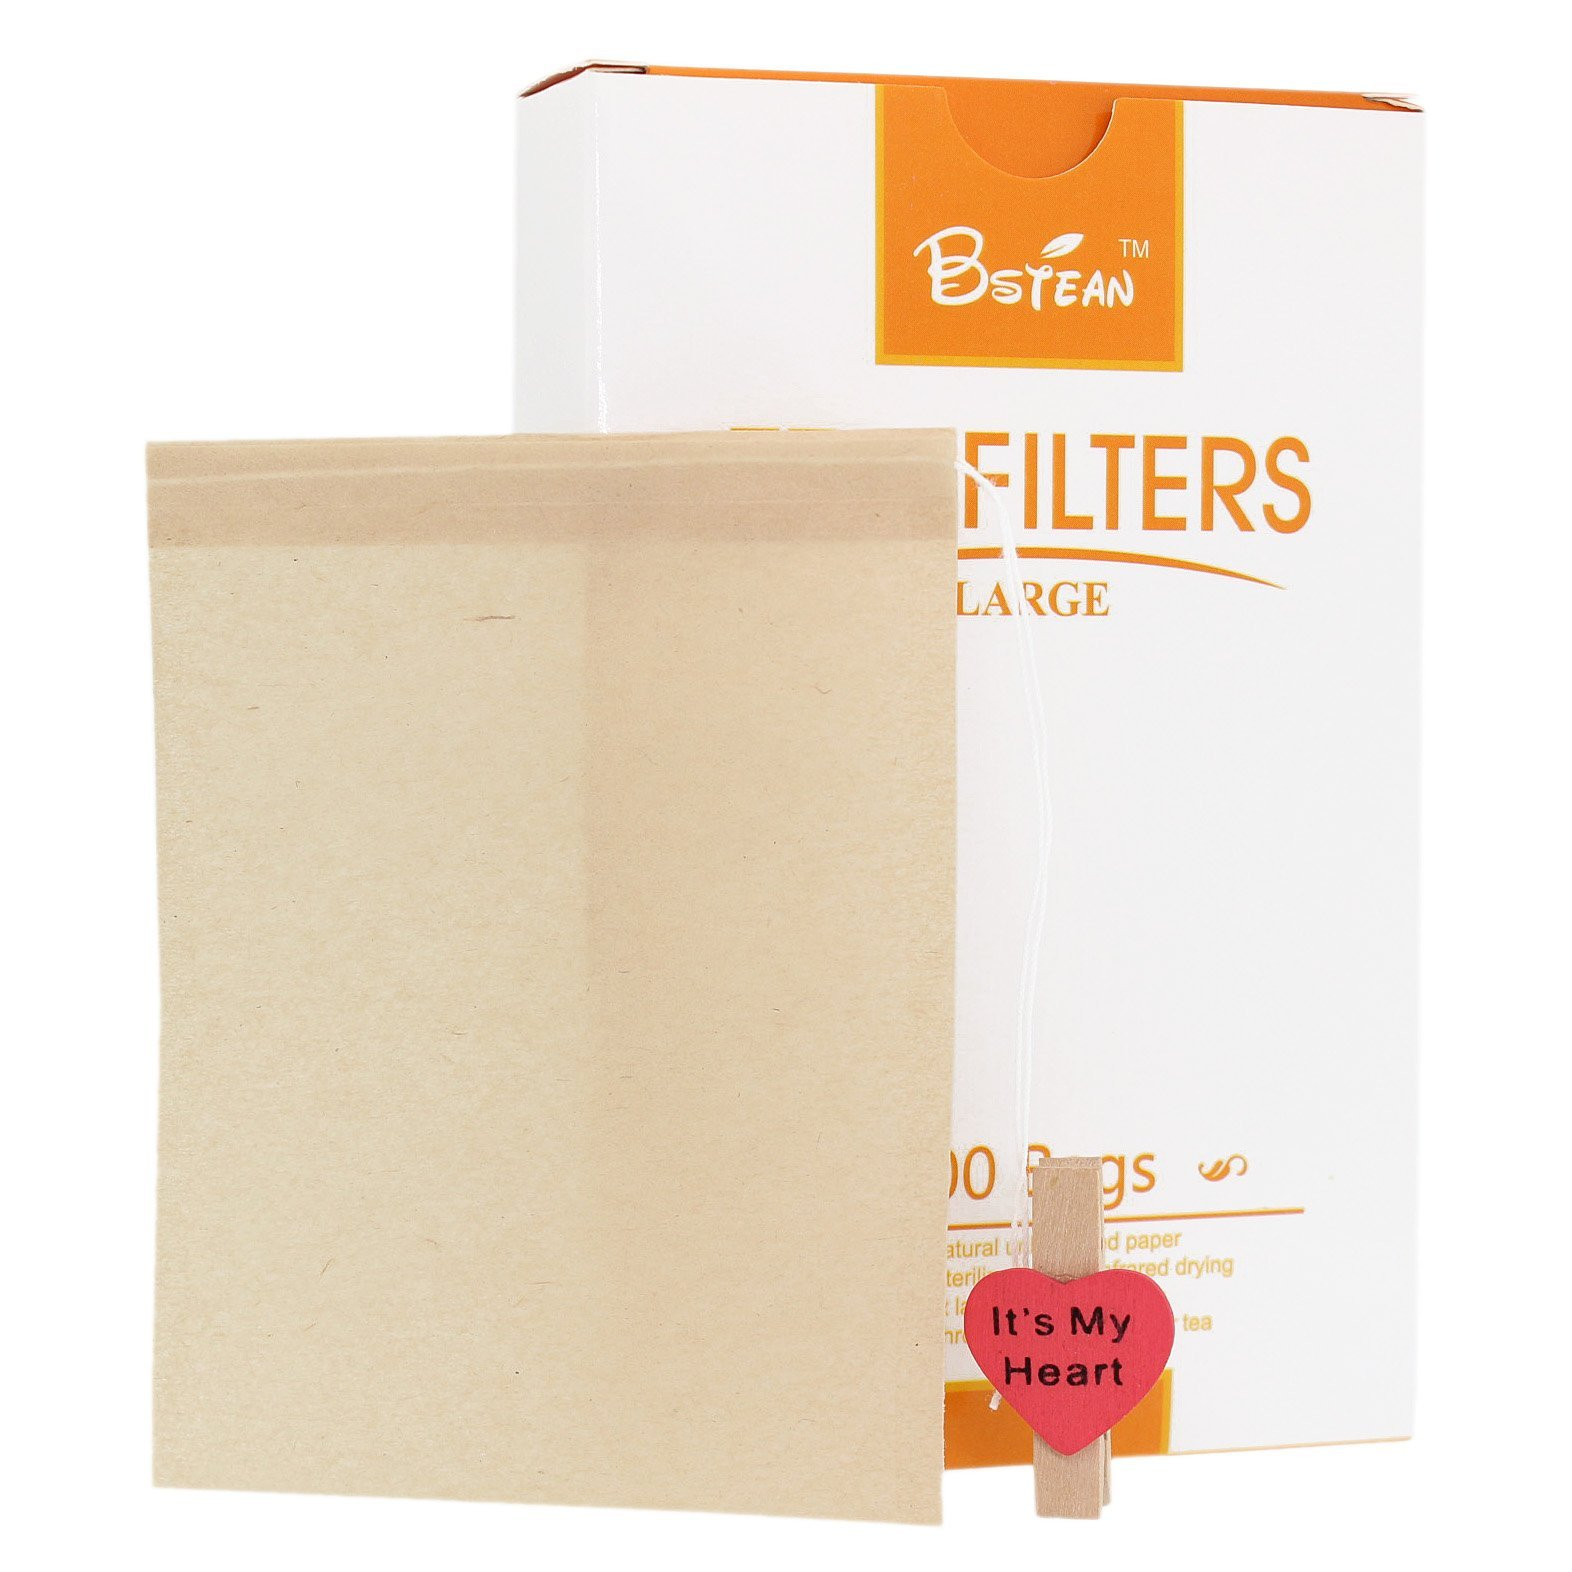 Bstean Tea Filter Bags Large Disposable Infuser with Drawstring 100% Natural Unbleached Paper for Loose Leaf Tea with Free Clip (100 PCS)